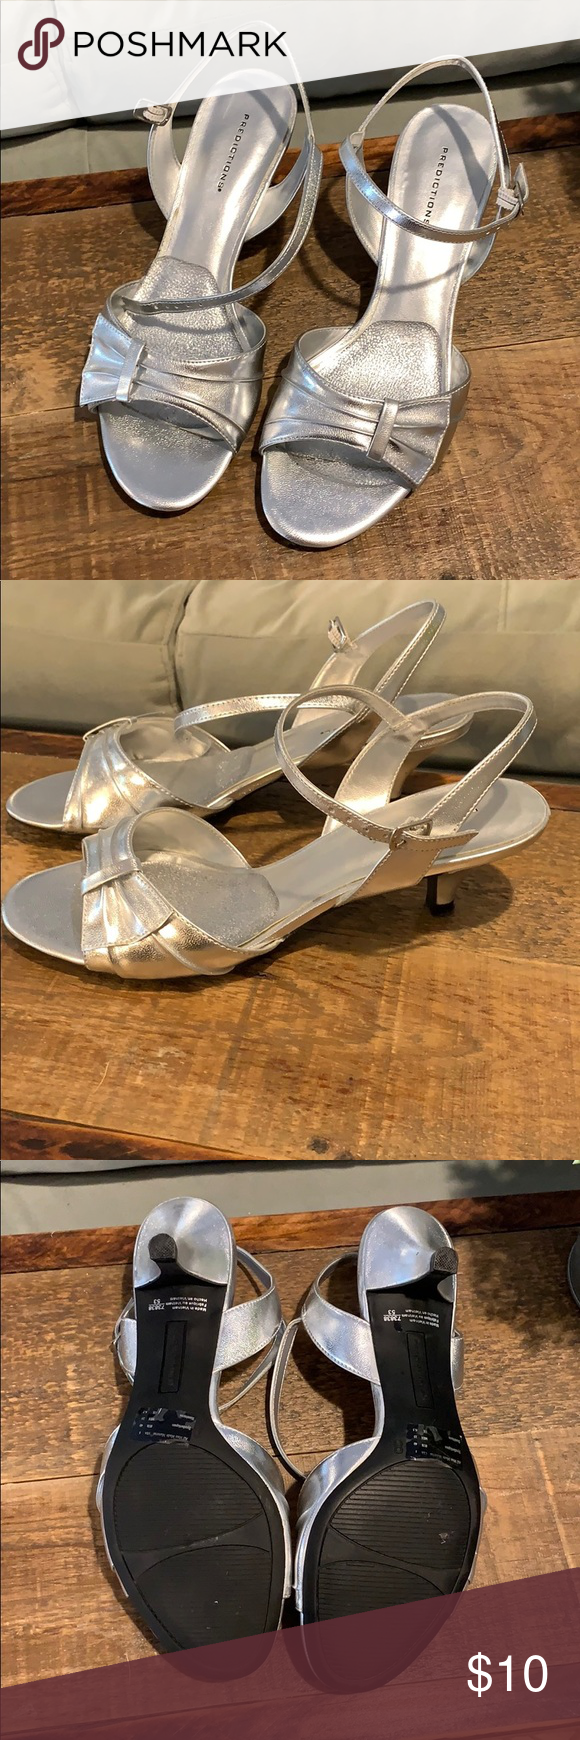 Silver Kitten Heels Worn Once Smoke Free Home Size 8 Silver With Ankle Strap And Cushion Insole Attached Predictions Silver Kitten Heels Heels Kitten Heels